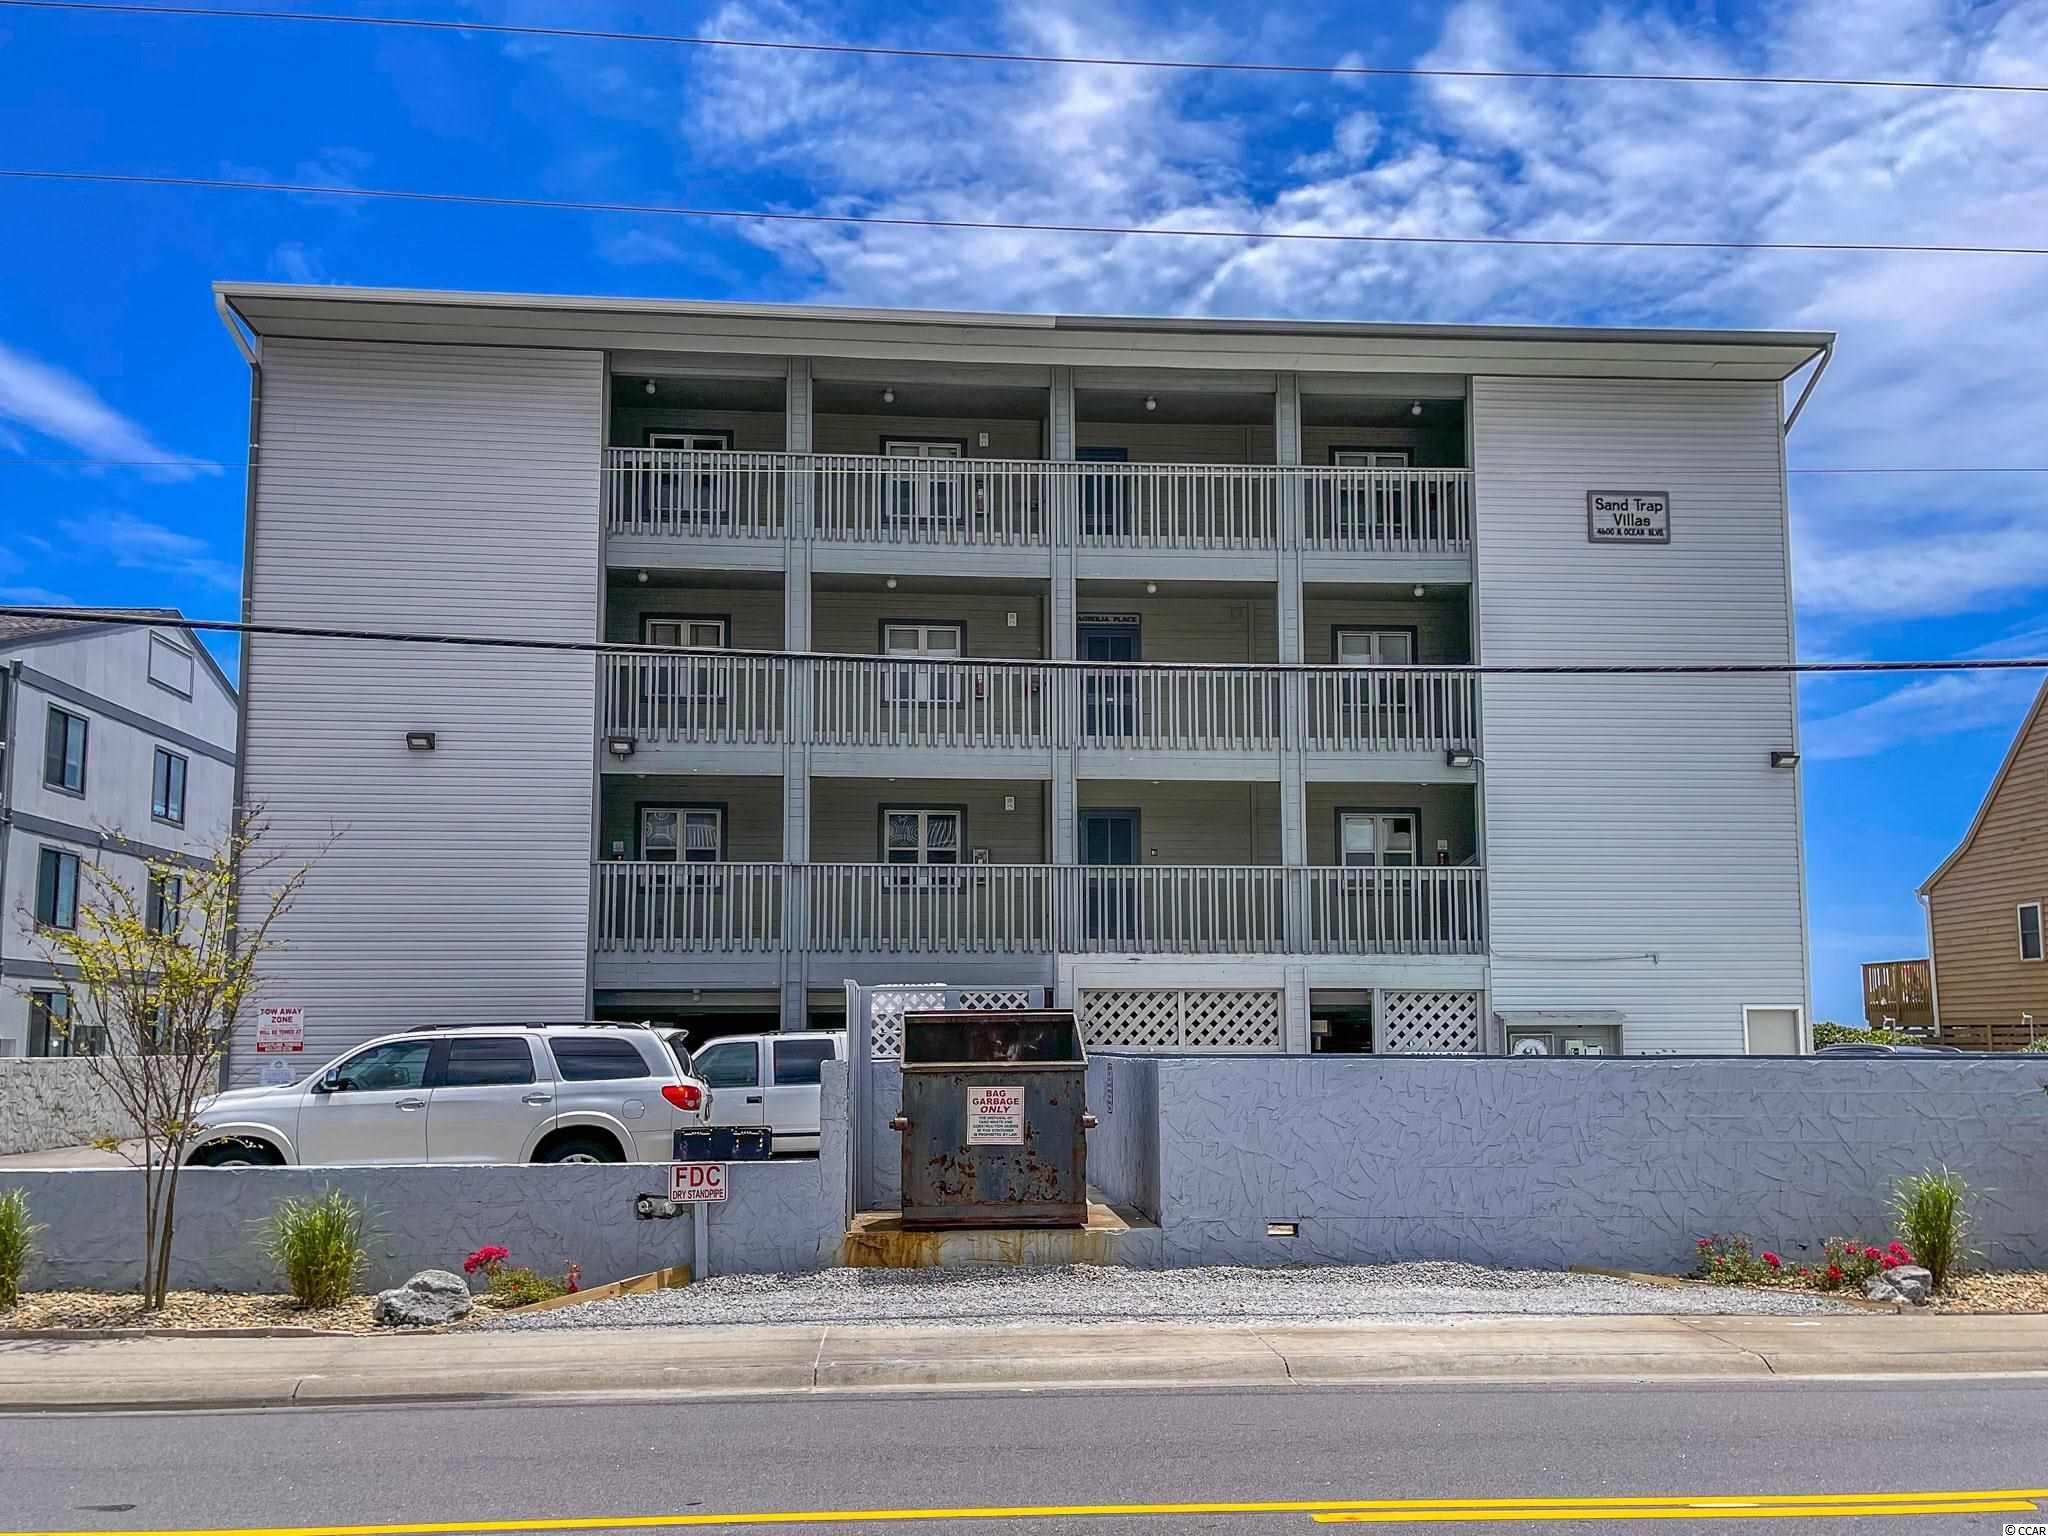 Welcome to Sandtrap Villas. This move-in ready fully furnished and elegantly decorated unit comes with three bedrooms and two baths to host parties up to 8 guests.  Located in the prestigious Cherry Grove section of North Myrtle Beach, where you will find Unit B-2 to be only one of 9 very spacious units directly facing the ocean.  Numerous upgrades include Ceramic flooring throughout the unit with laminate flooring in all bedrooms, four flatscreen TVs, blackout drapes, state-of-the-art Xbox gaming system, including games, new balcony railing 2021, new refrigerator and dishwasher 2020, HVAC system 2020, granite countertops and cabinets 2018, new water heater 2018, balcony carpet 2018. Enjoy miles of oceanic views from your large 24 ft x 14 ft private balcony.  Amenities include an outdoor pool & outdoor shower.  There are plenty of local activities to enjoy, catamaran sailing, deep-sea fishing, golf, dining, shopping, and entertainment.  Whether an investment or your vacation get-away, this is a must-see.  Book your showing today!